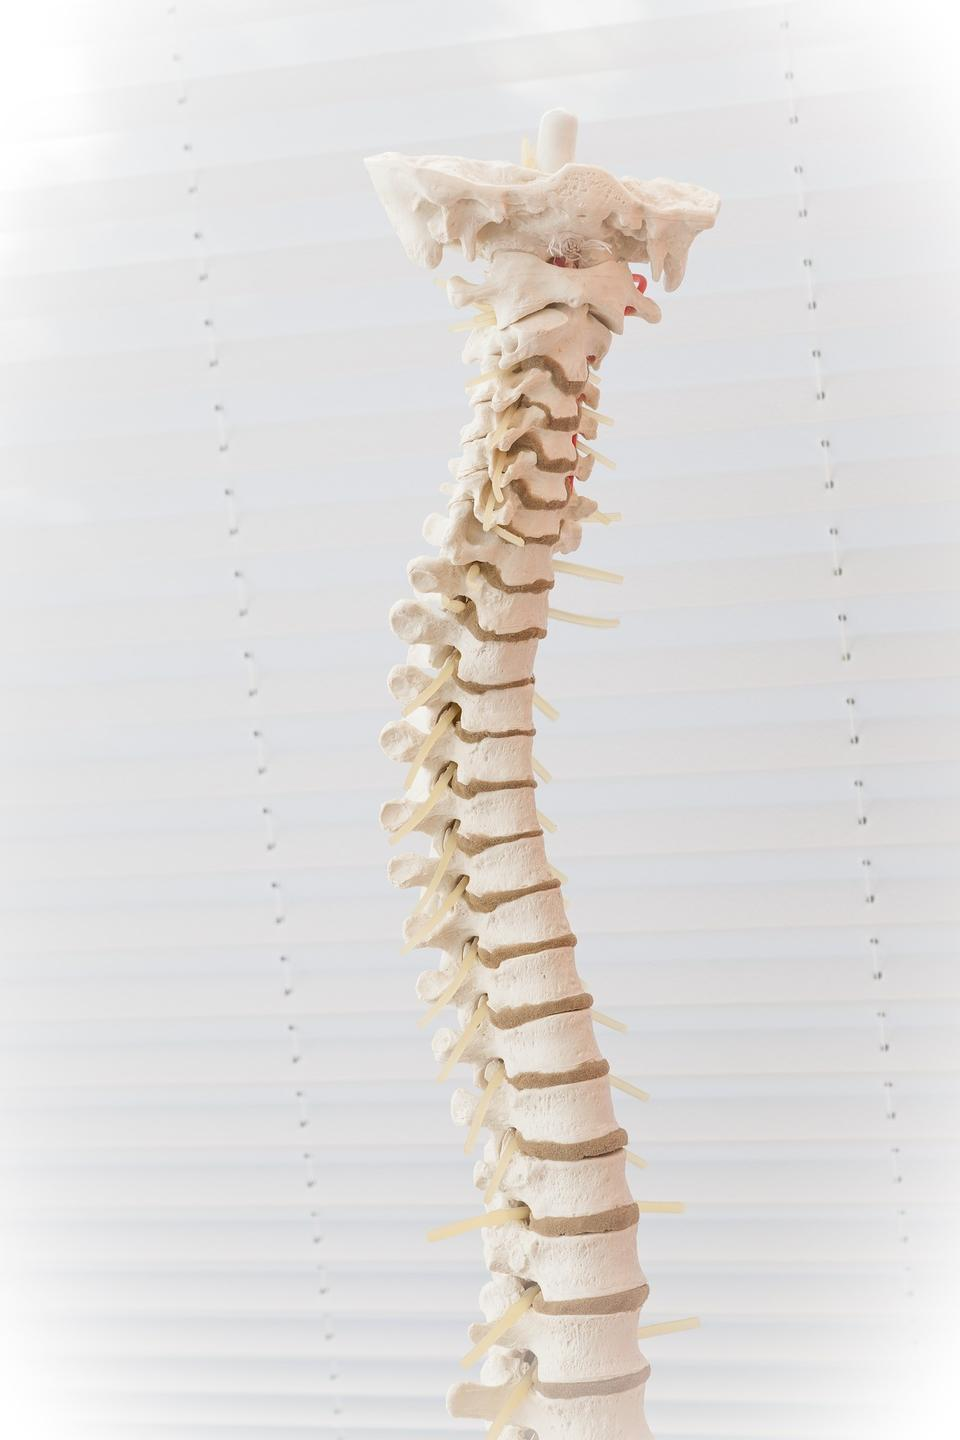 Our spines protects the body's superhighway to all of its complex systems.